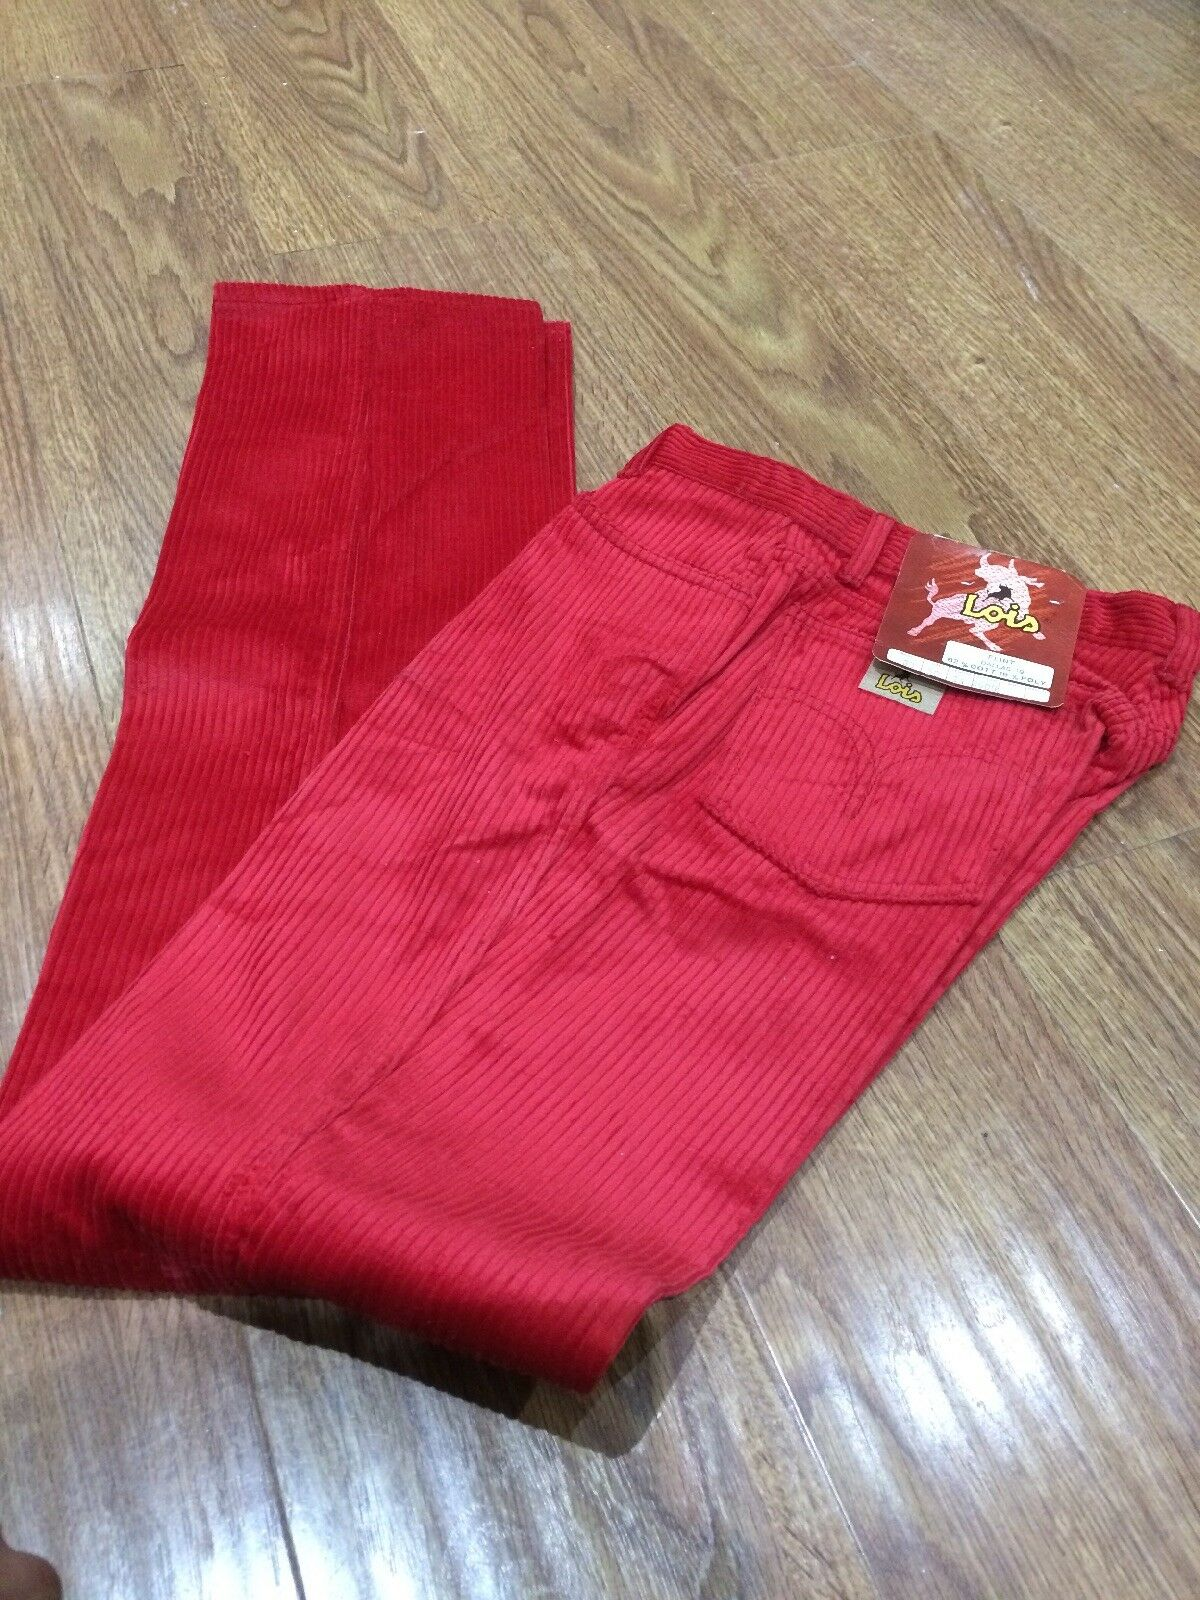 New Lois Cords, Red, 31W, Collectible, From The 80's